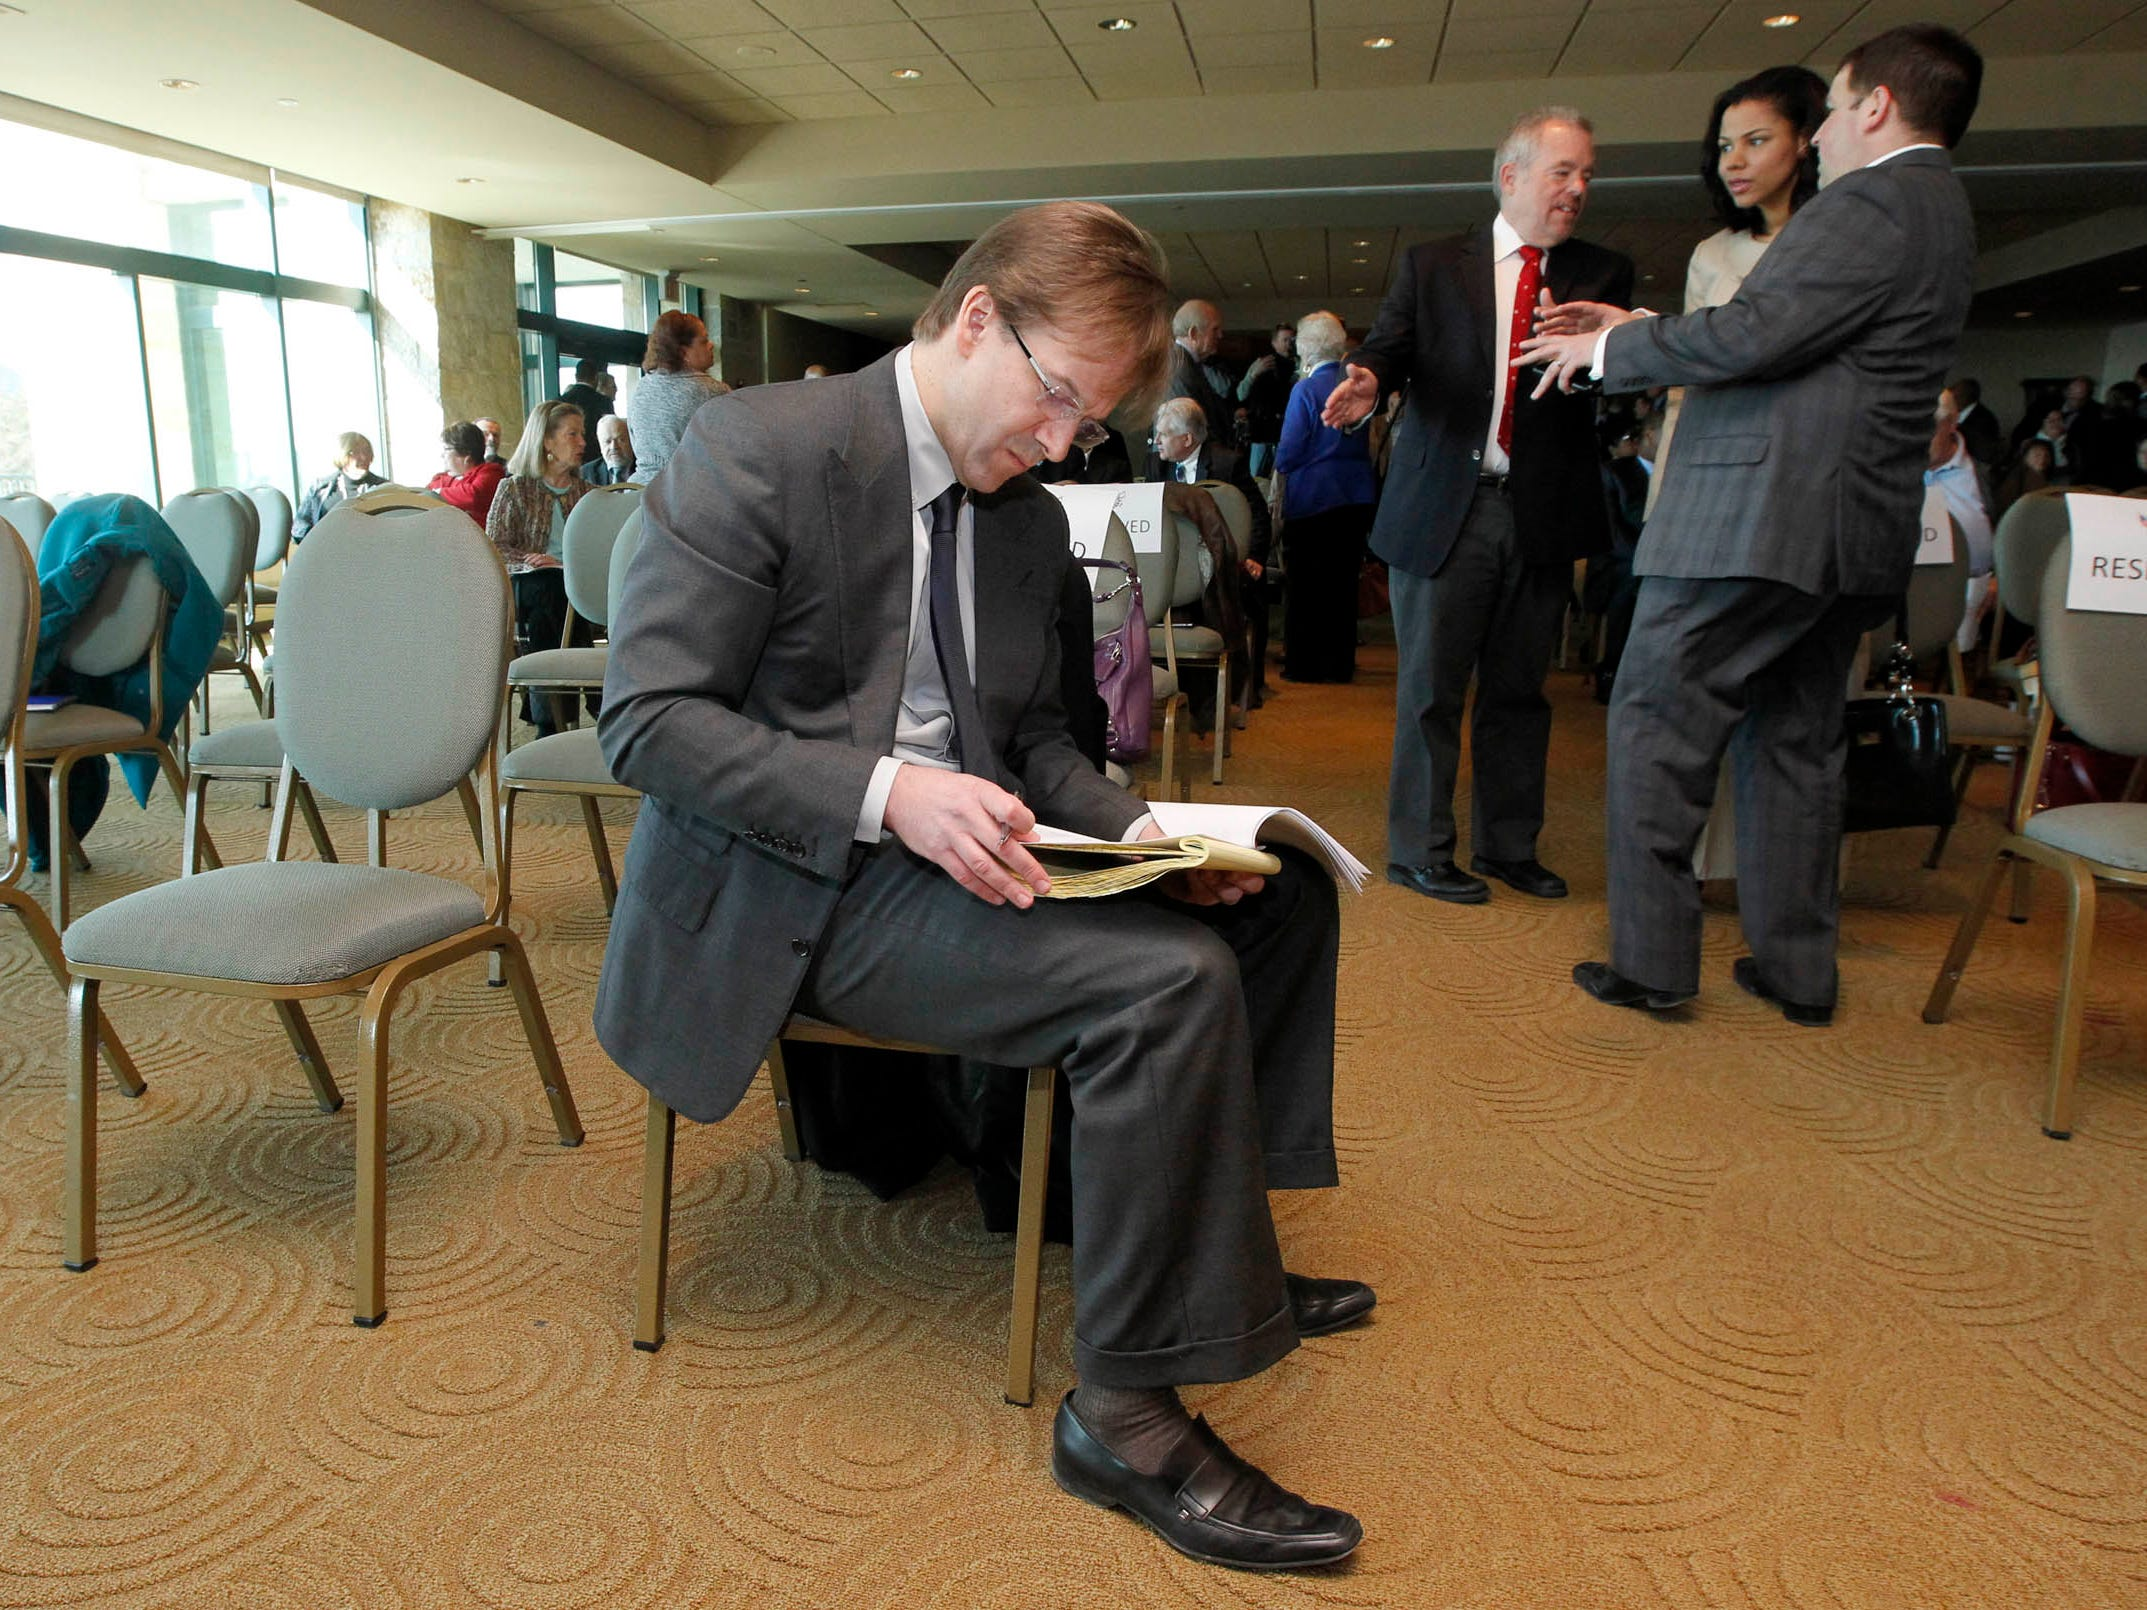 2014: Milwaukee County Executive Chris Abele looks over his notes before his State of the County speech in Miller Pavilion at O'Donnell Park.